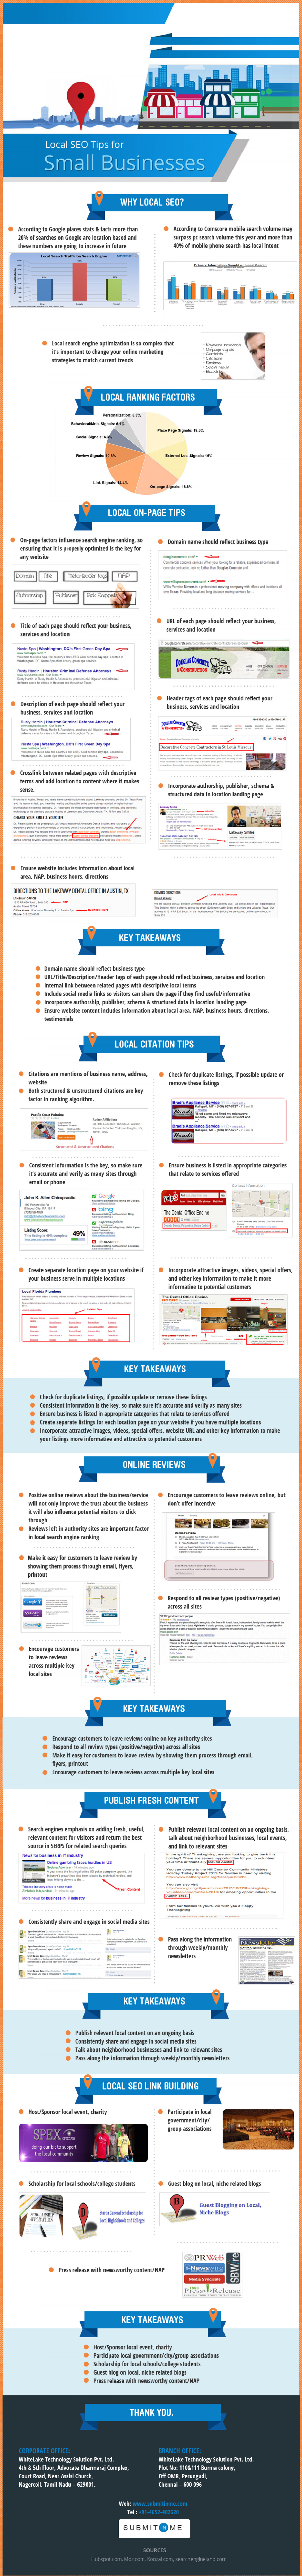 Local SEO Tips for Small Business Infographic